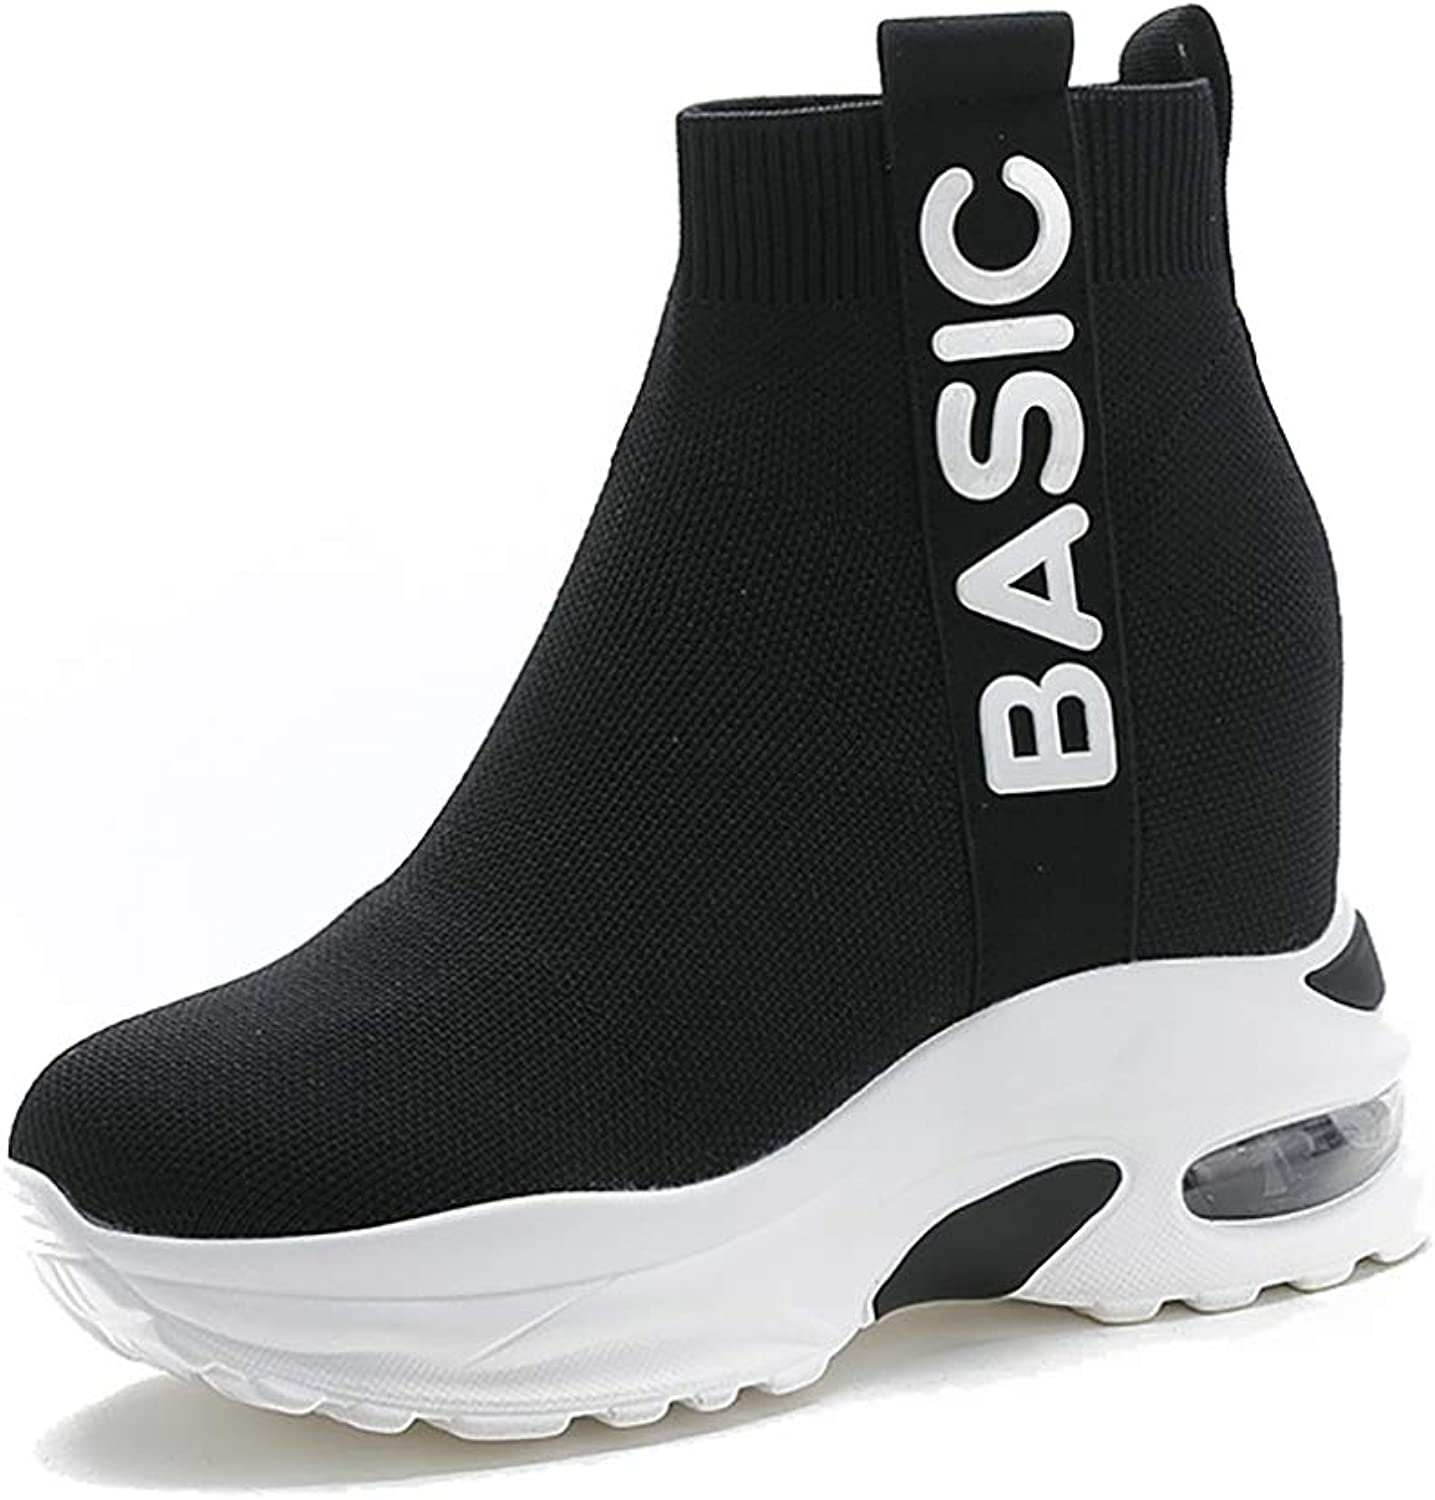 Elastic Socks shoes Women, Sports shoes Women, Casual Sports Socks Boots Fashion Wild Spring Summer Home Outdoor White, Black 34-39